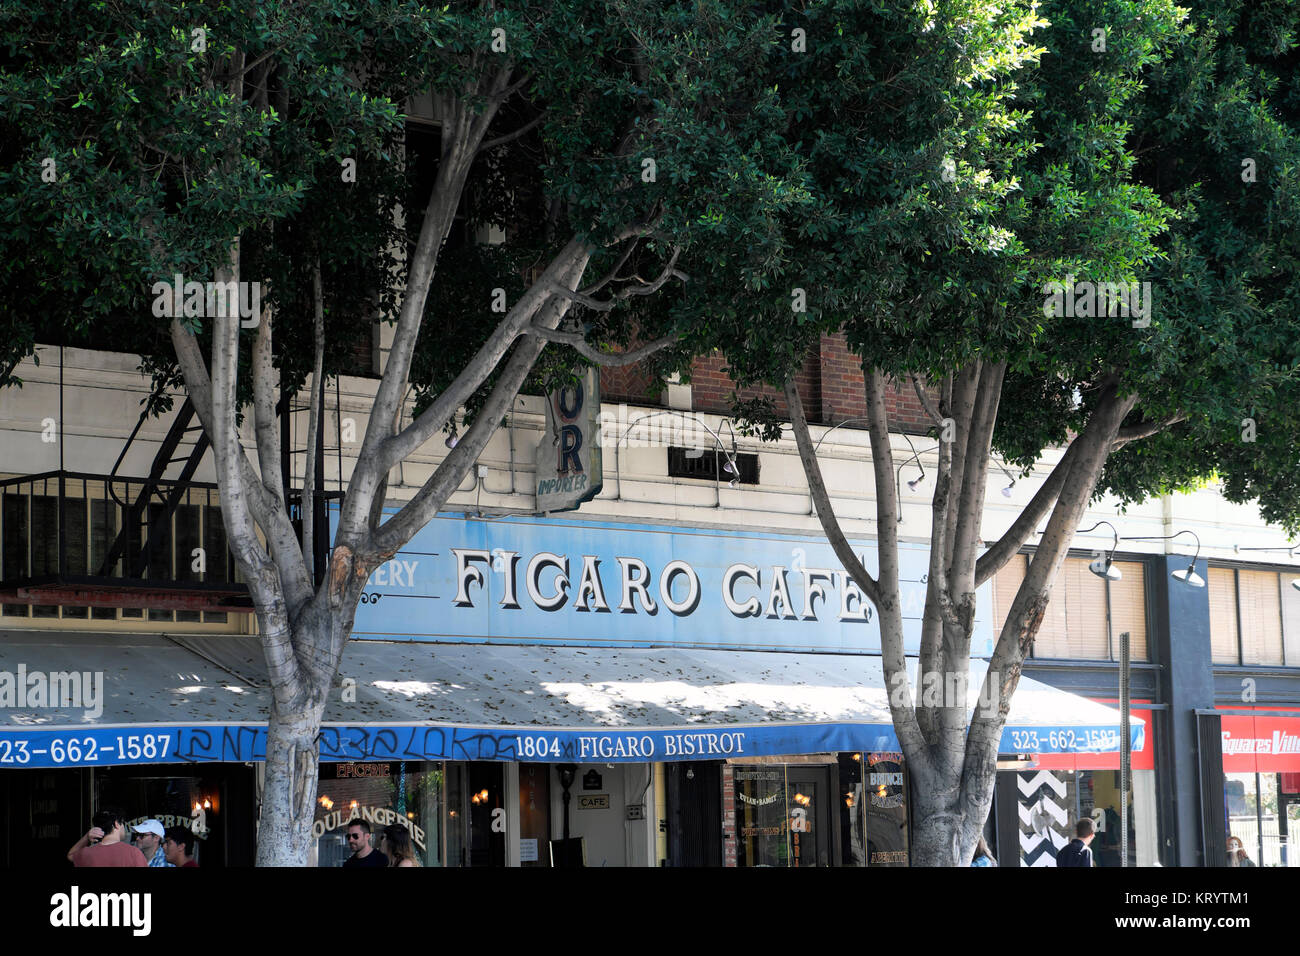 Exterior view of Figaro Cafe sign with trees on Vermont Avenue in Los Feliz neighbourhood of Los Angeles, California - Stock Image